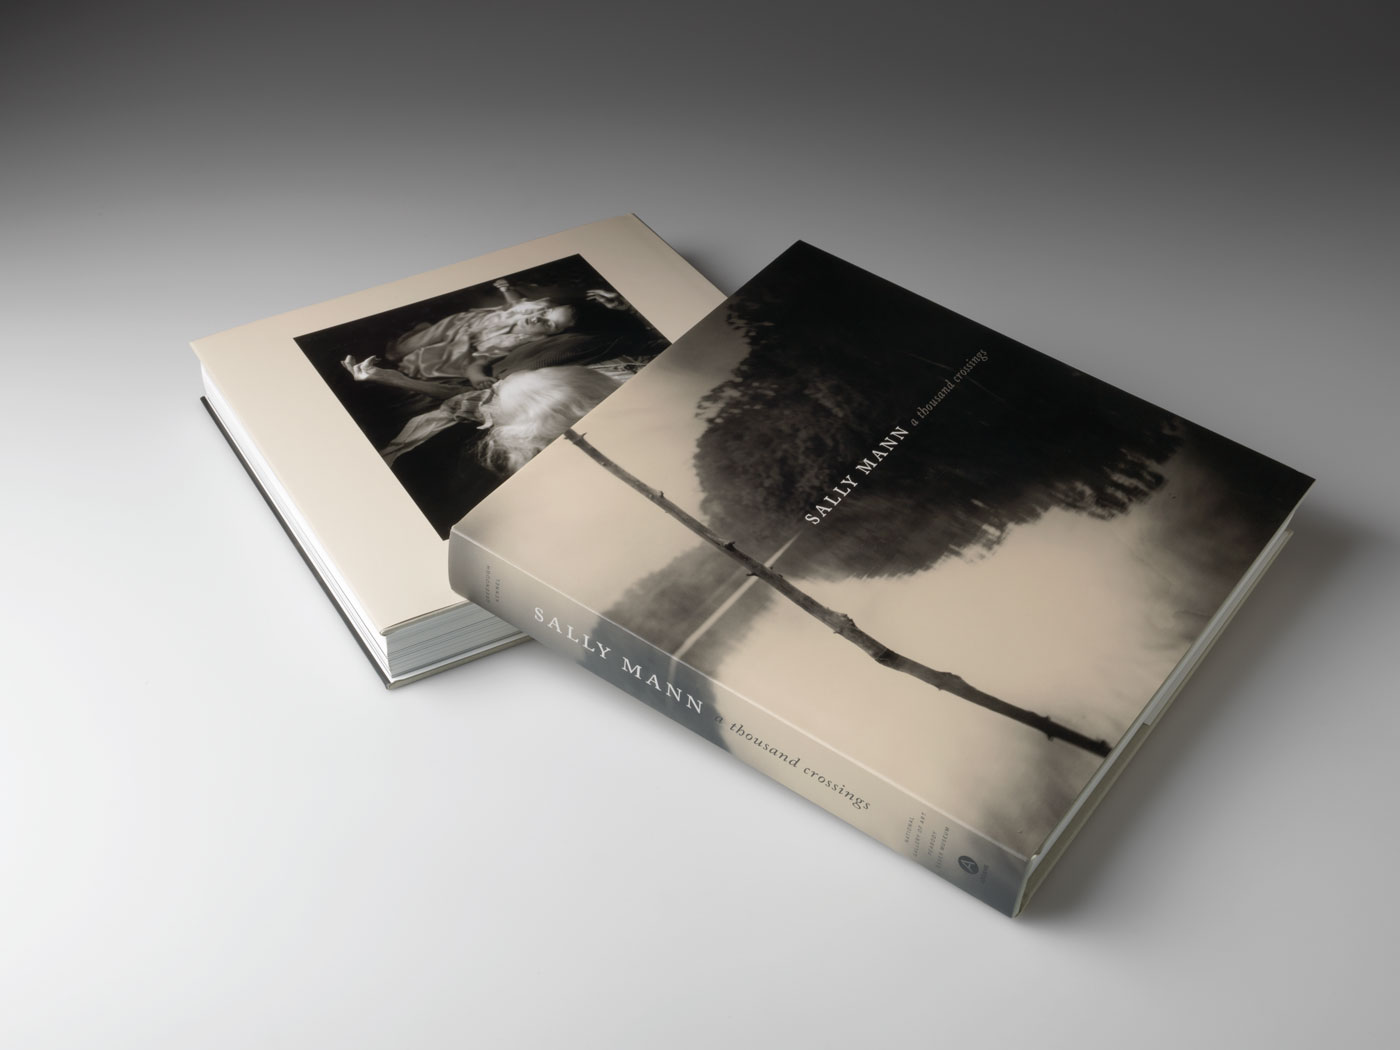 Sally Mann's <em>A Thousand Crossings</em>